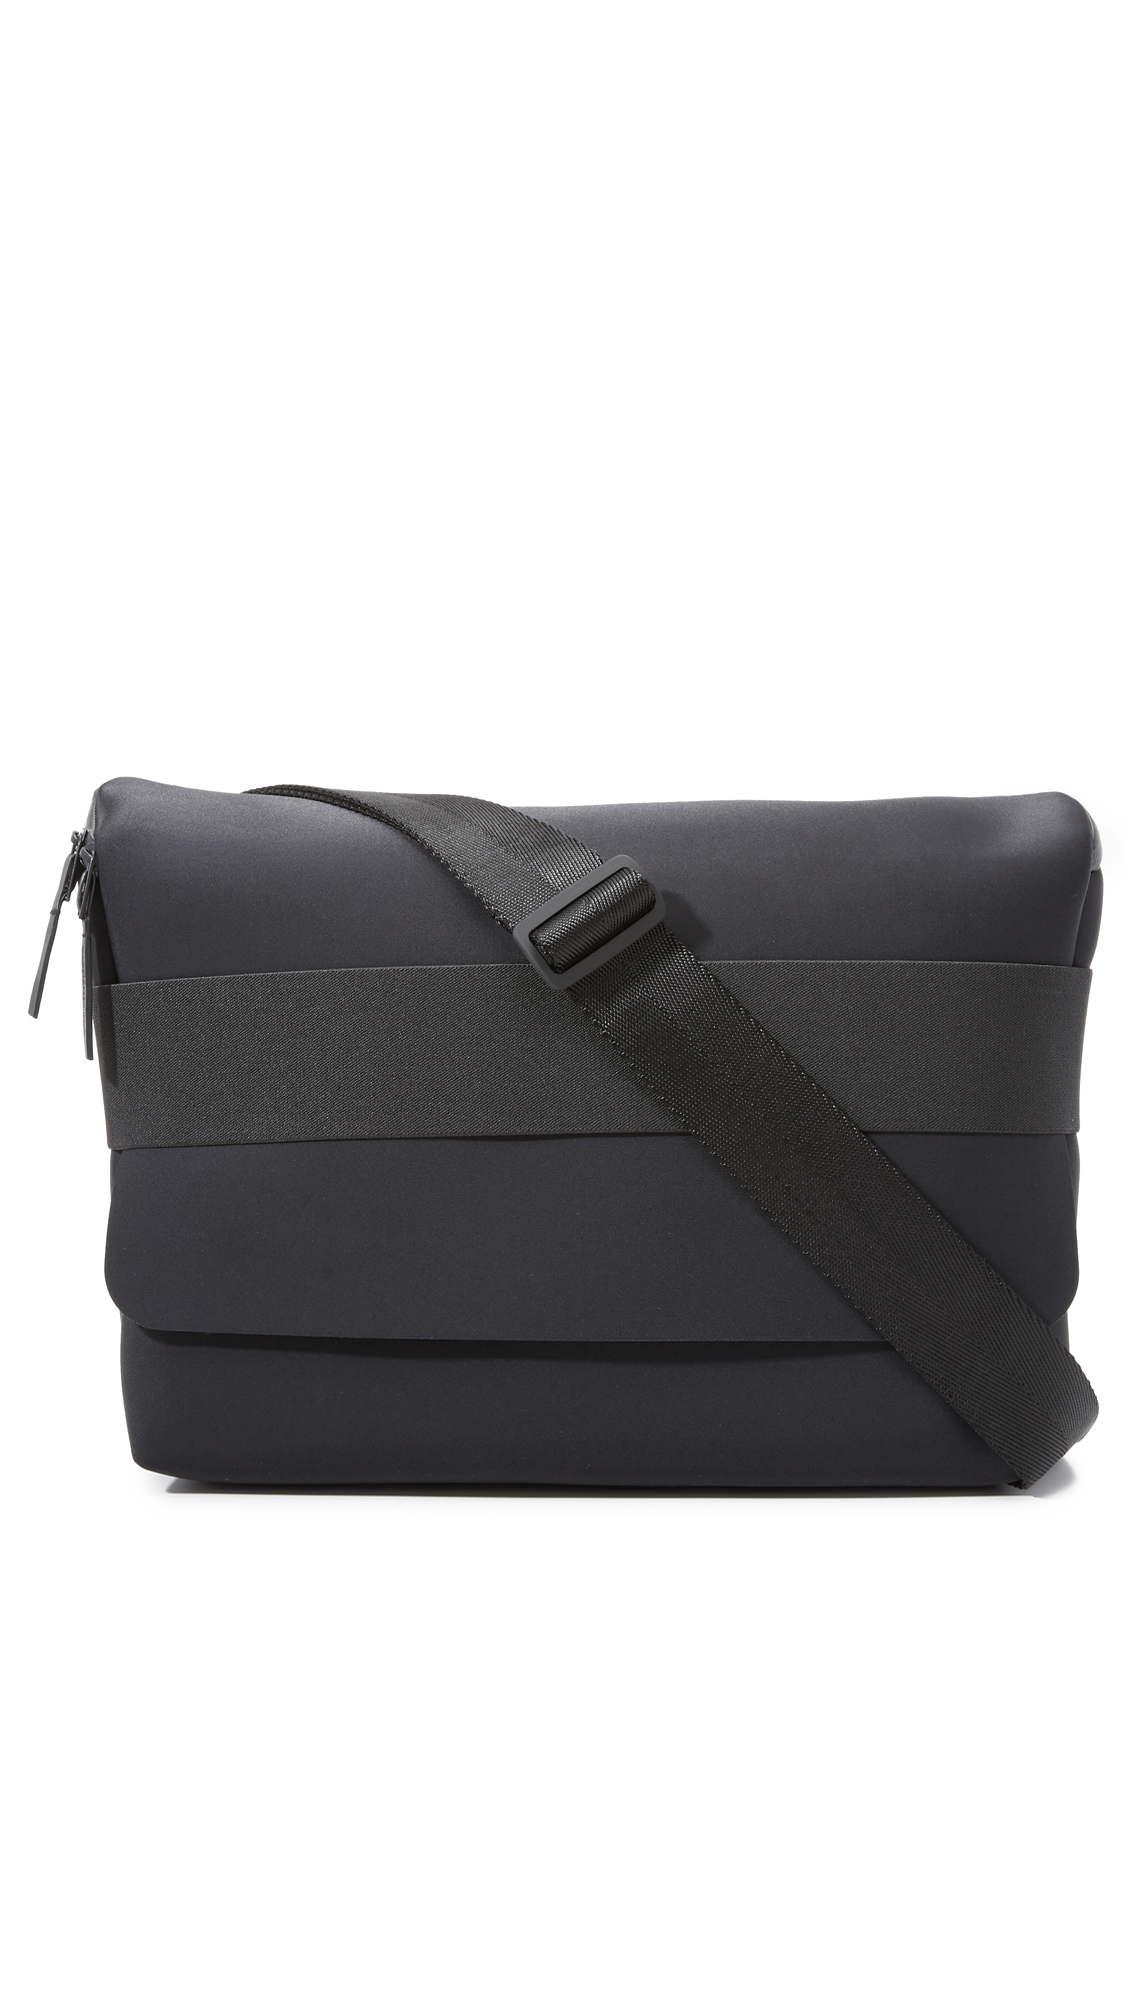 74df29d05b0f Y-3 Qasa Messenger Bag